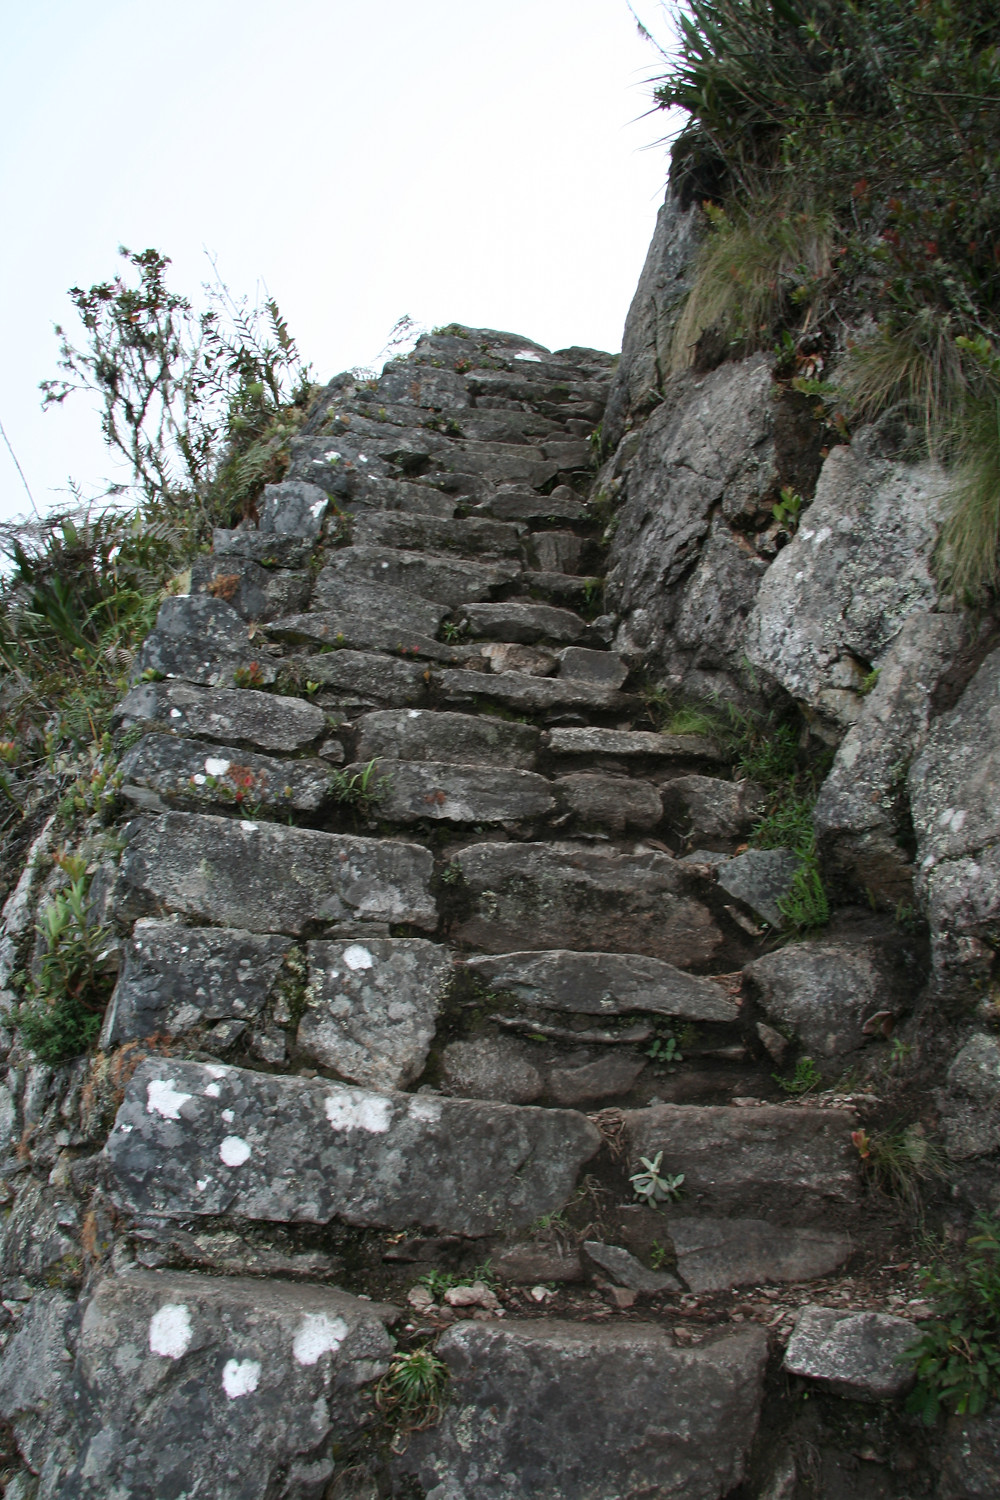 The steps become steeper towards the top. Since there are no handrails, you brace yourself on the mountainside or the stone steps